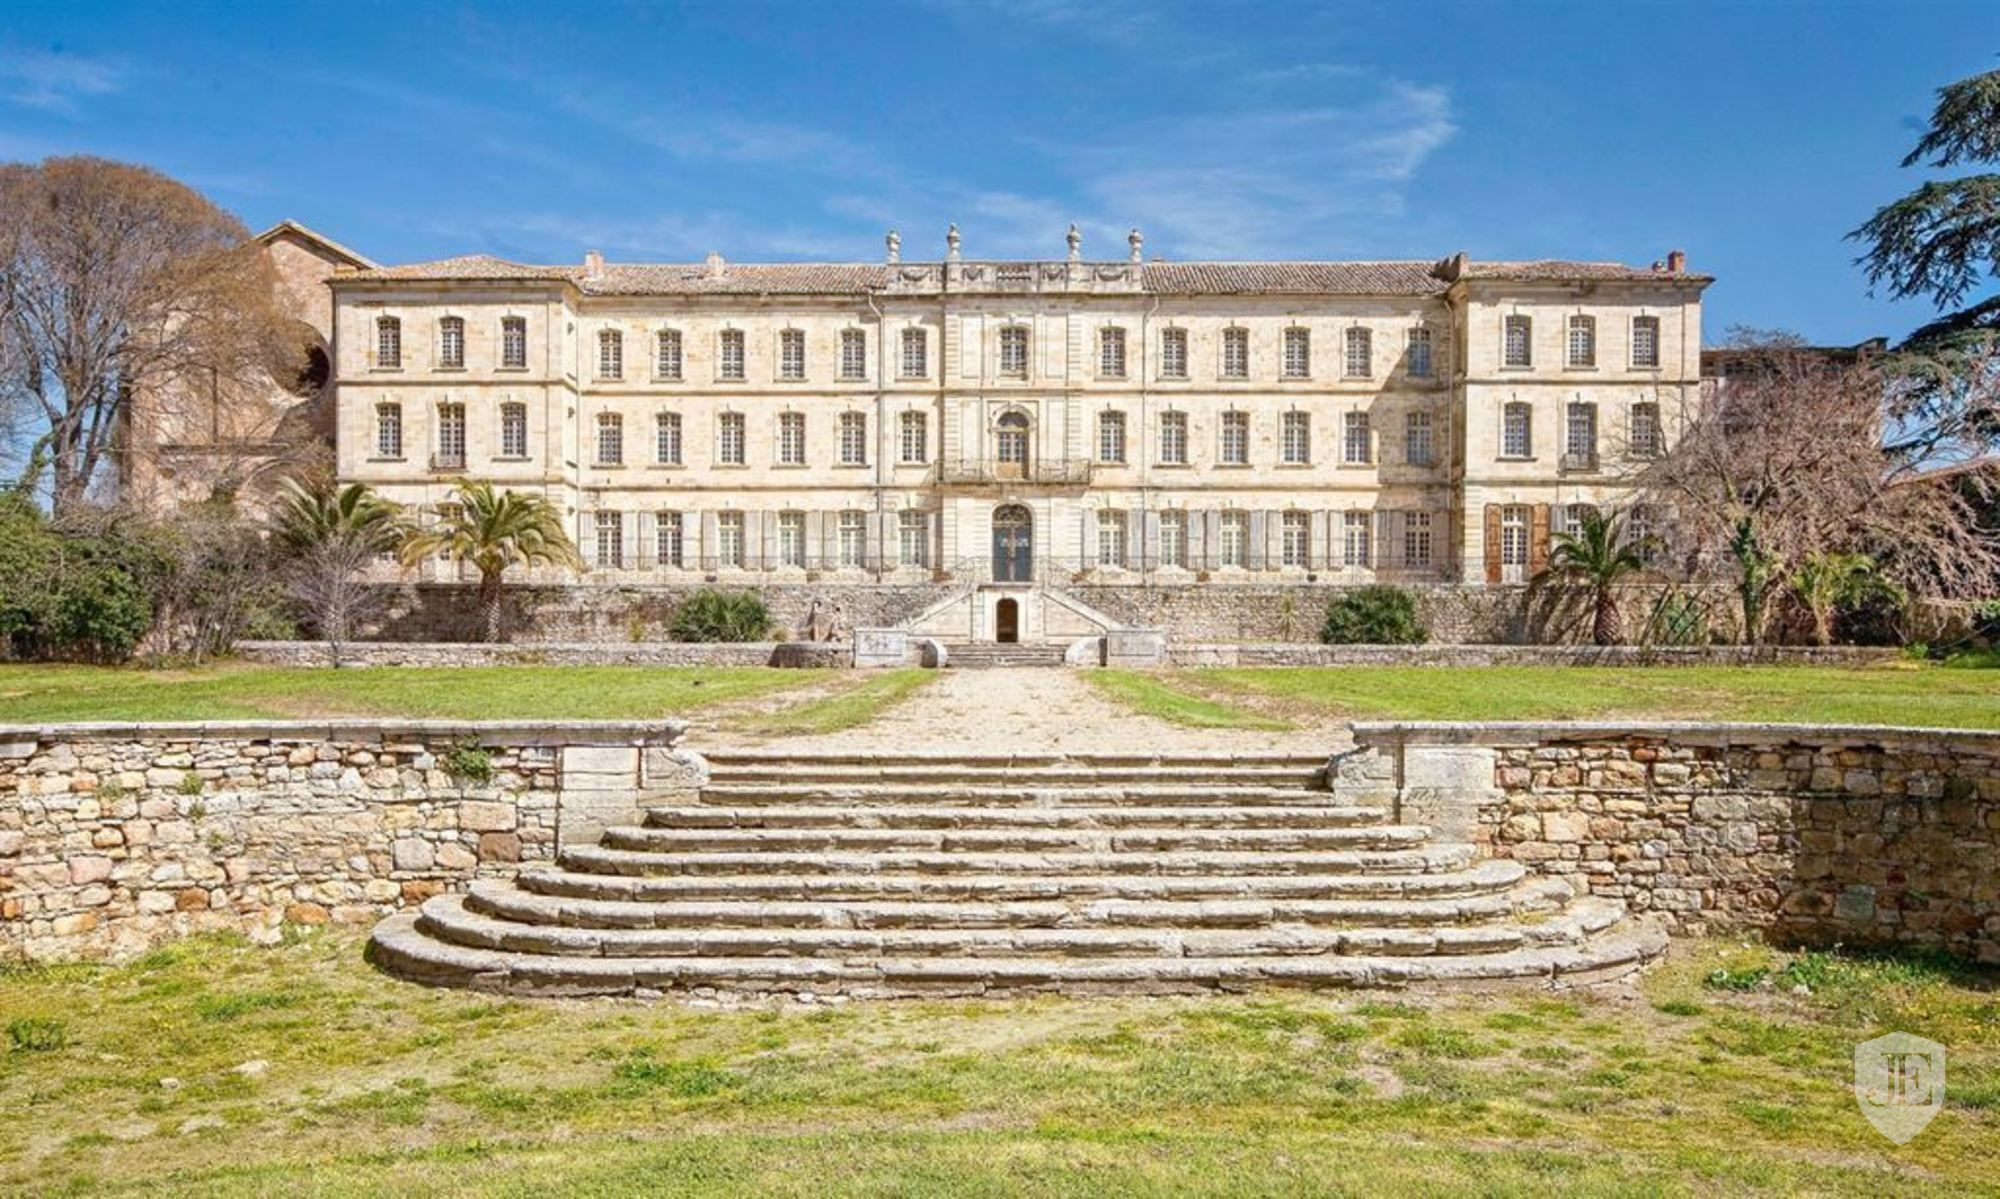 Exceptional And Vast Historical Castle In Pezenas France For Sale On Jamesedition Palace For Sale Houses For Sale France French Castles